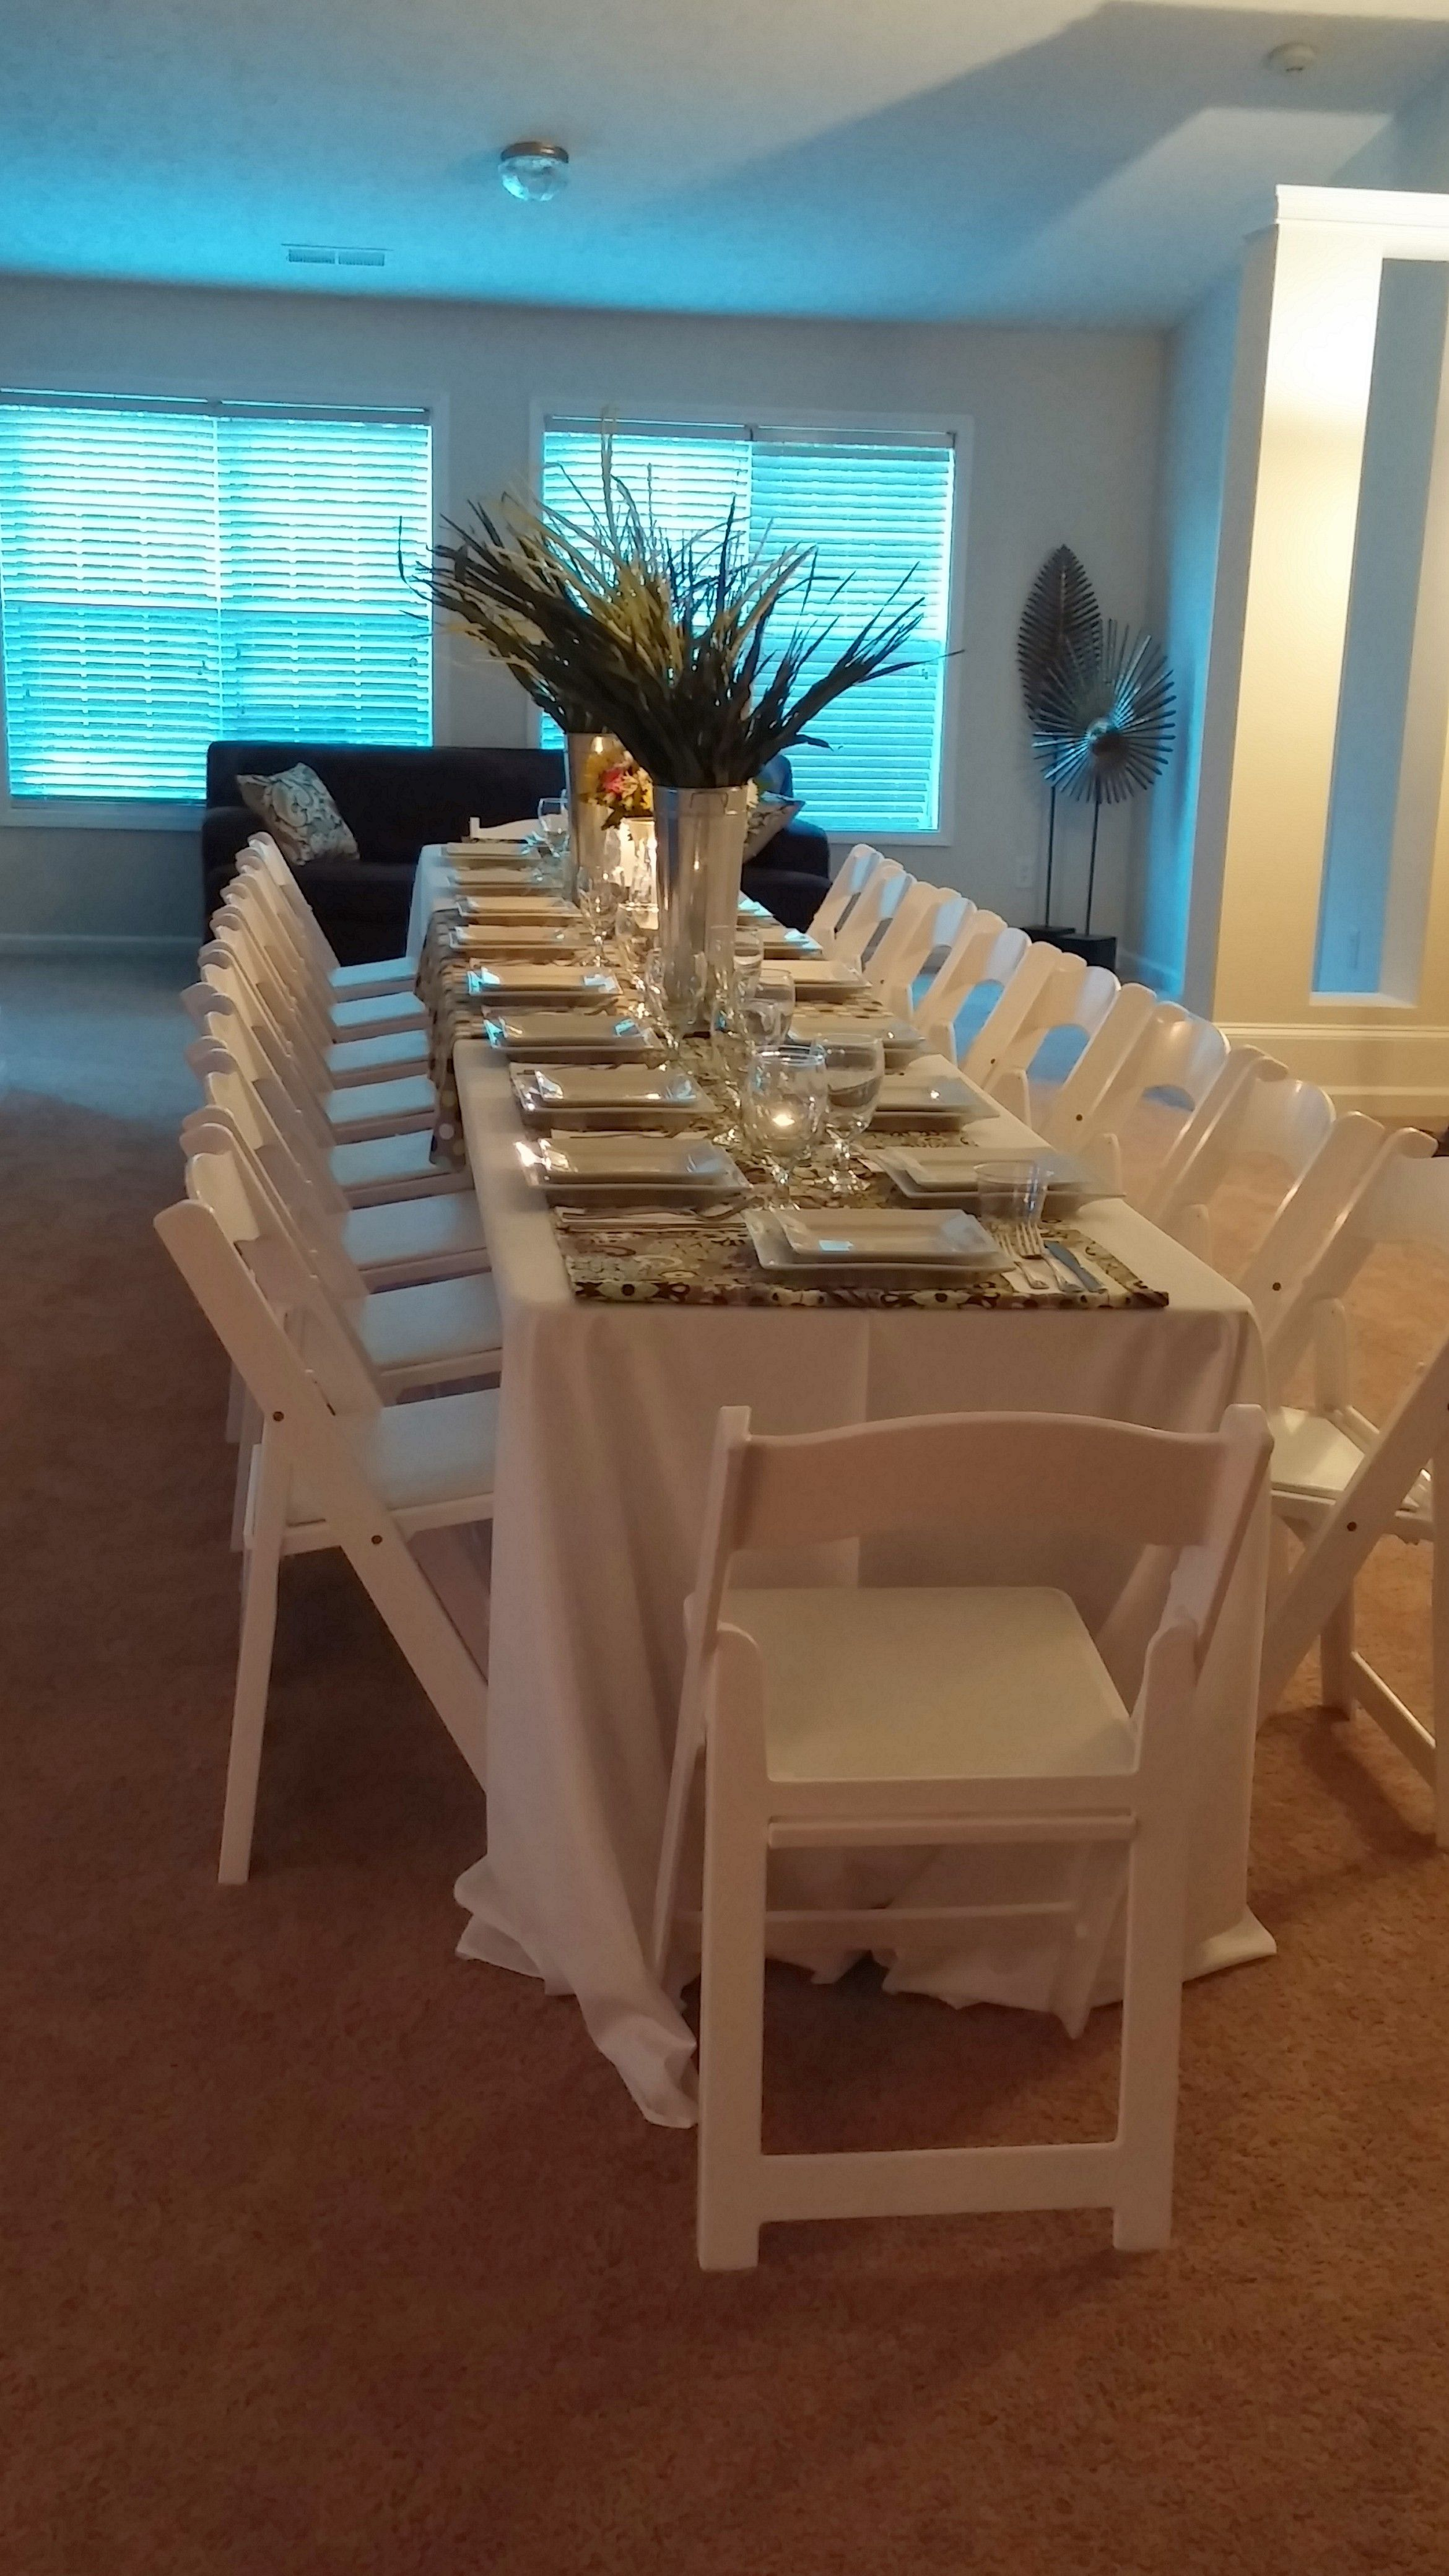 Chair Rental Atlanta Great Formal Dinner Atlanta Rental White Resin Chair Table